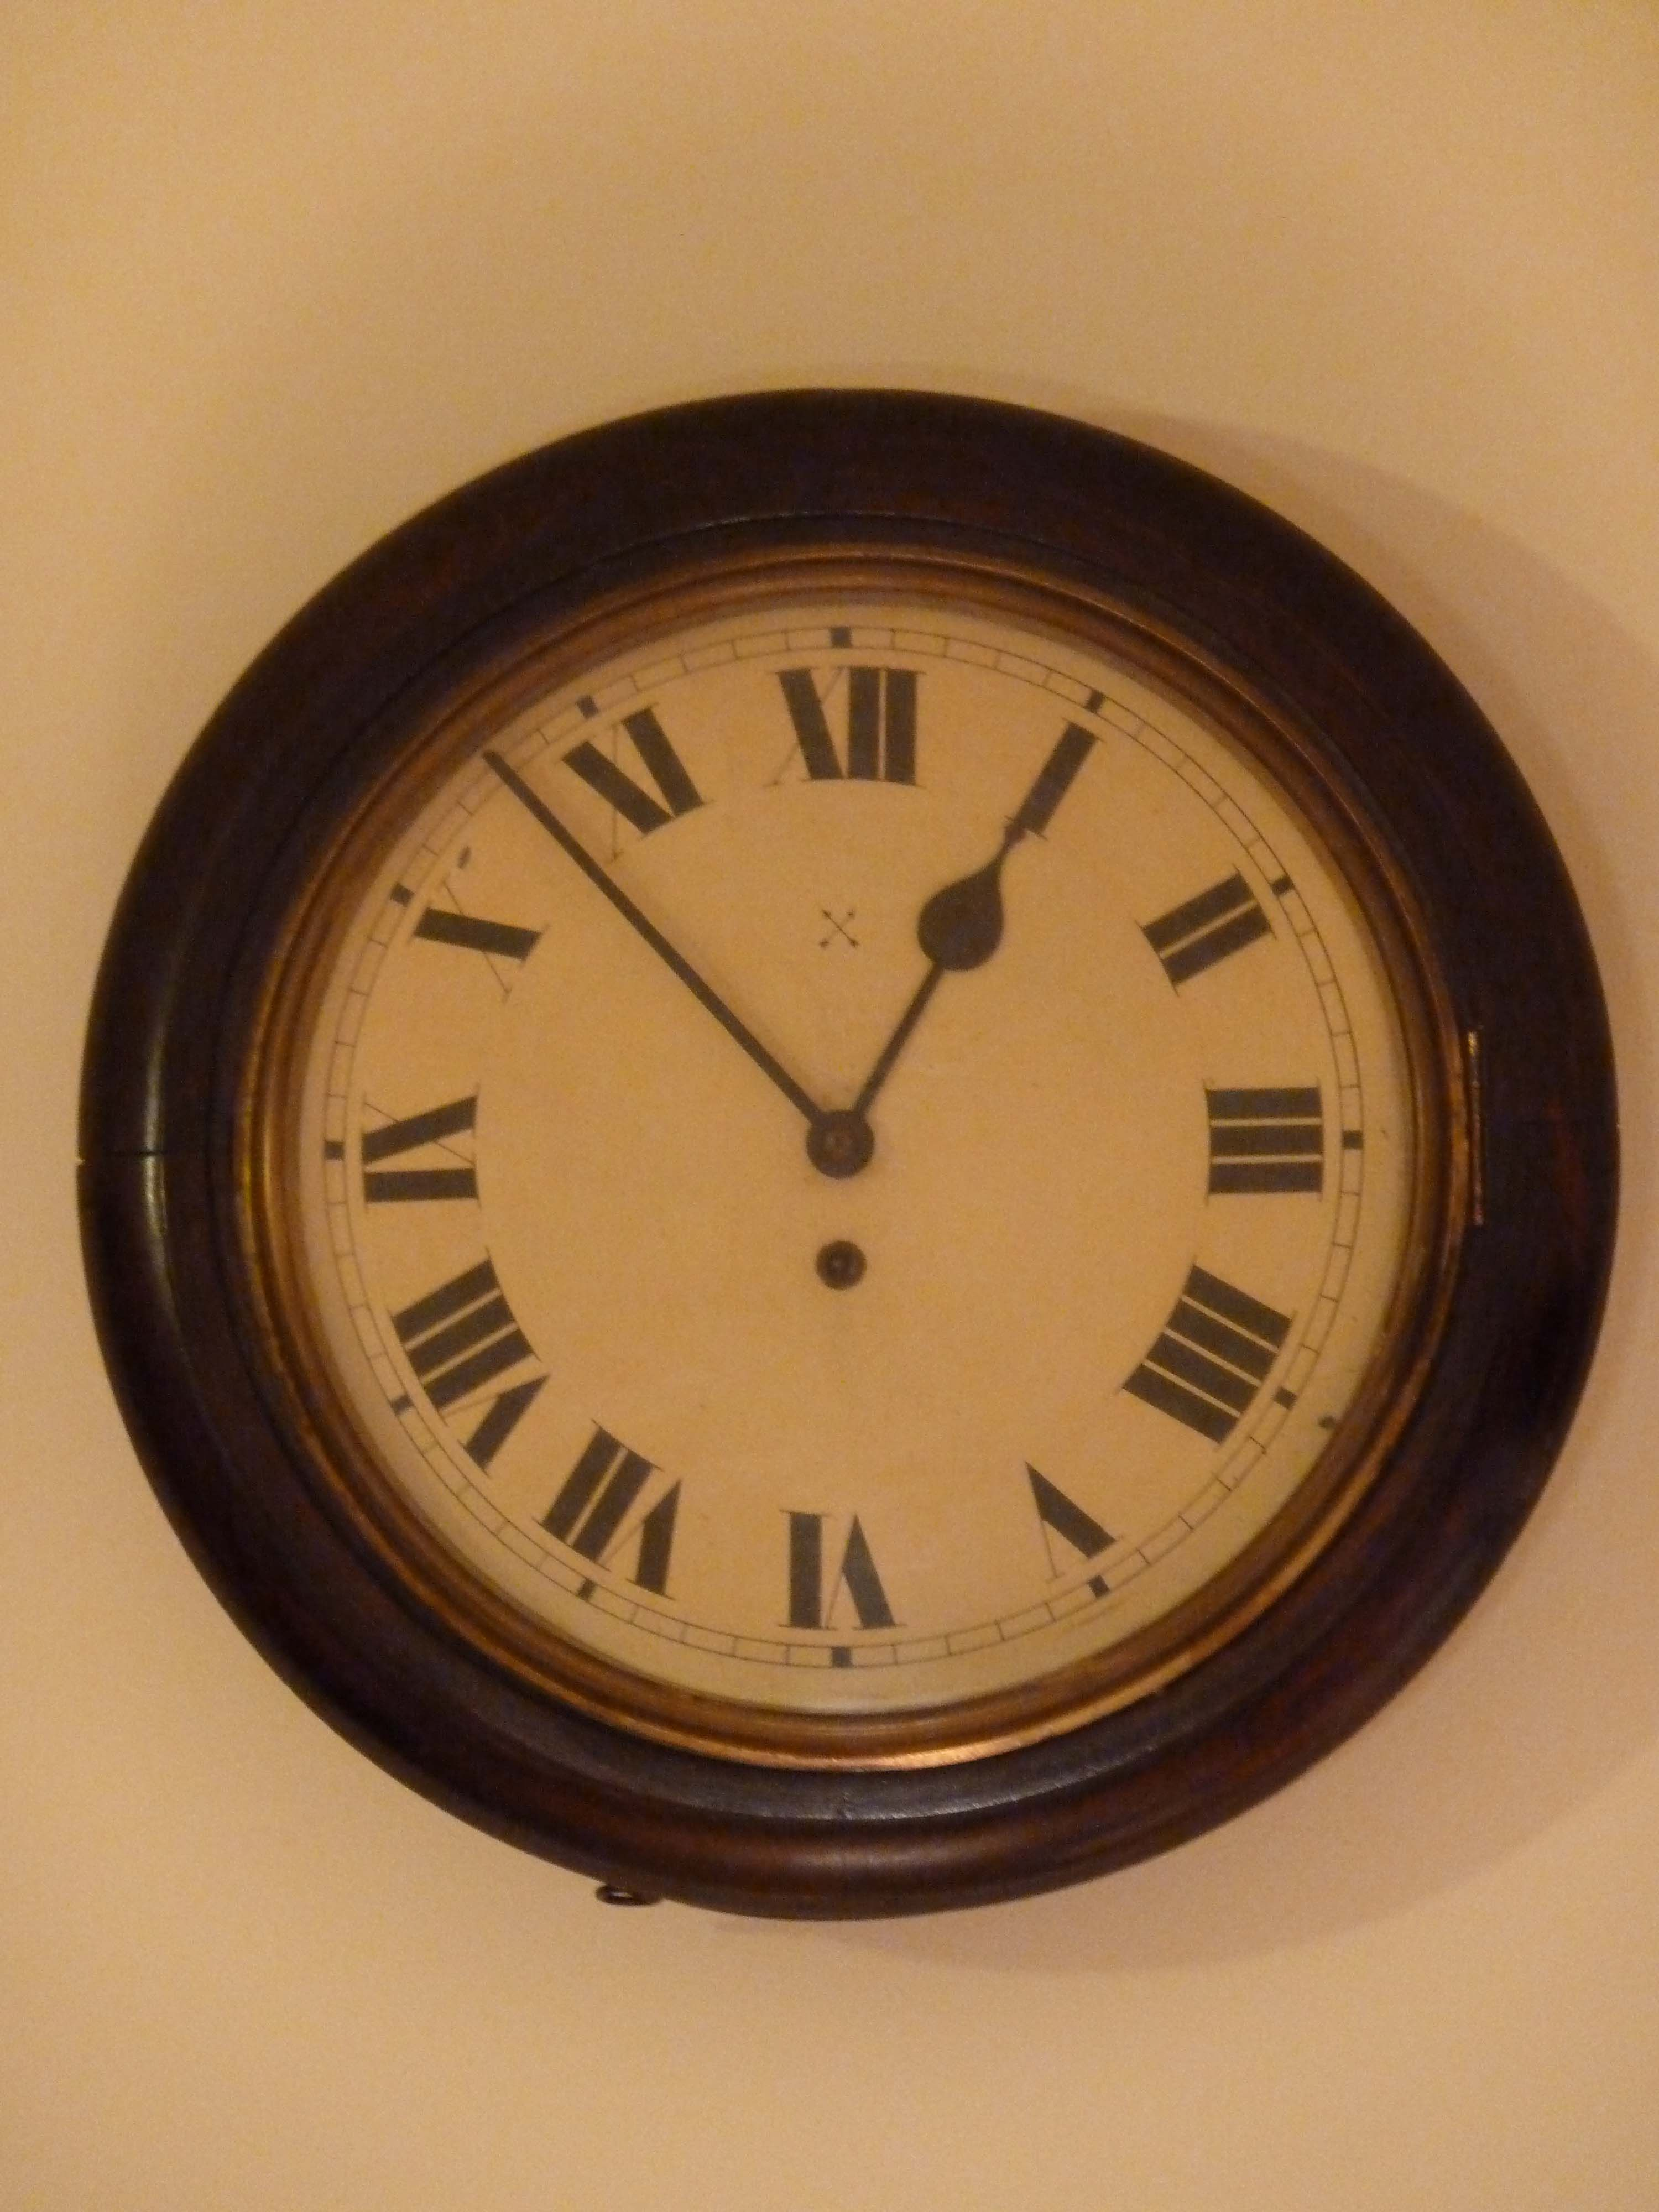 Image Result For Old Wall Clock